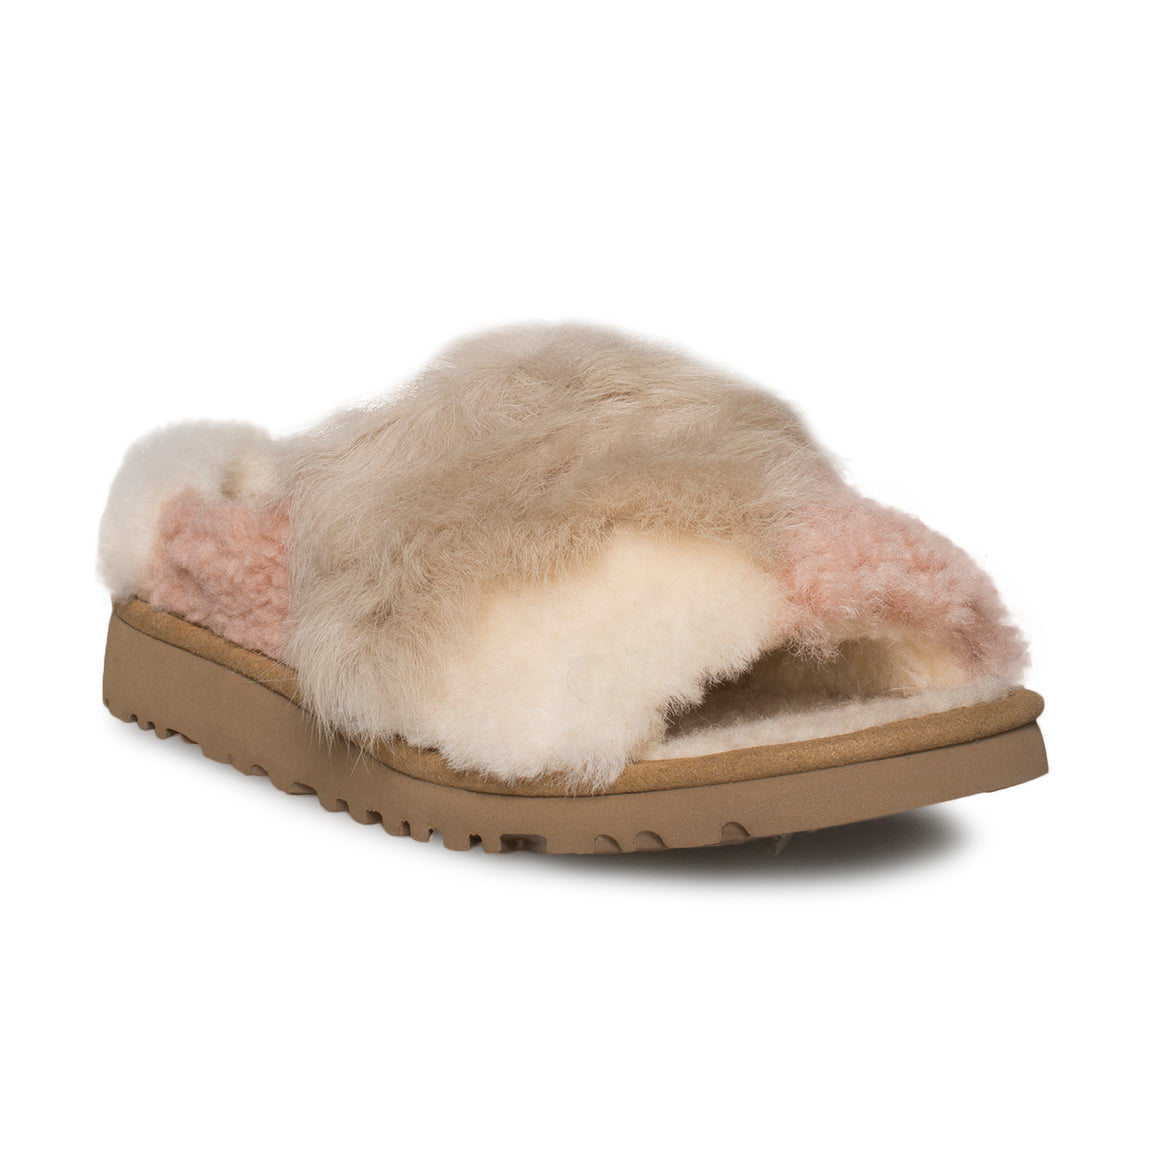 UGG Patchwork Fluff Slide Chestnut Slippers - Women's